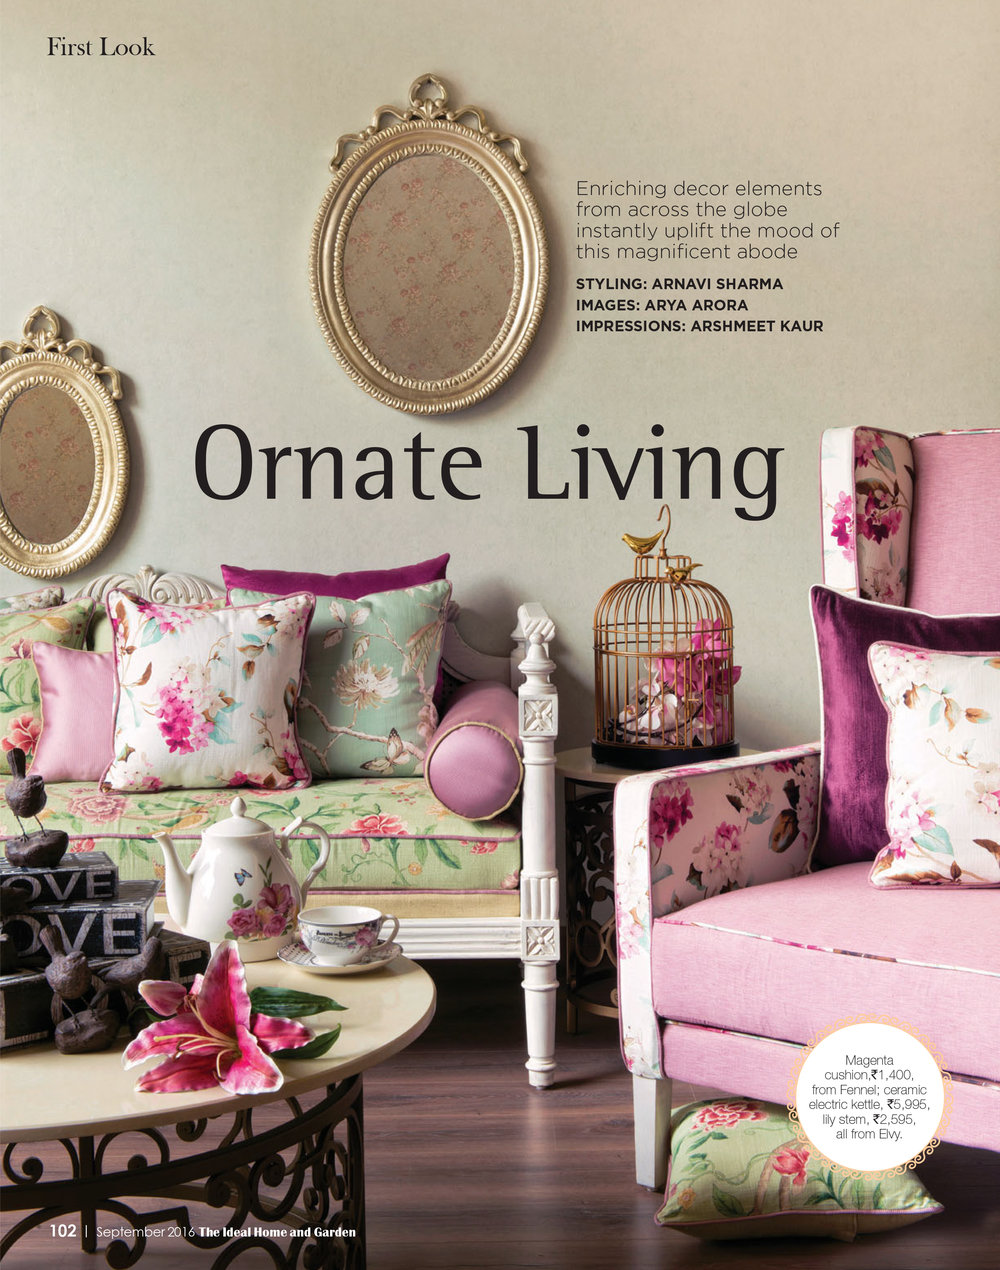 Ideal Homes - Ornate Living